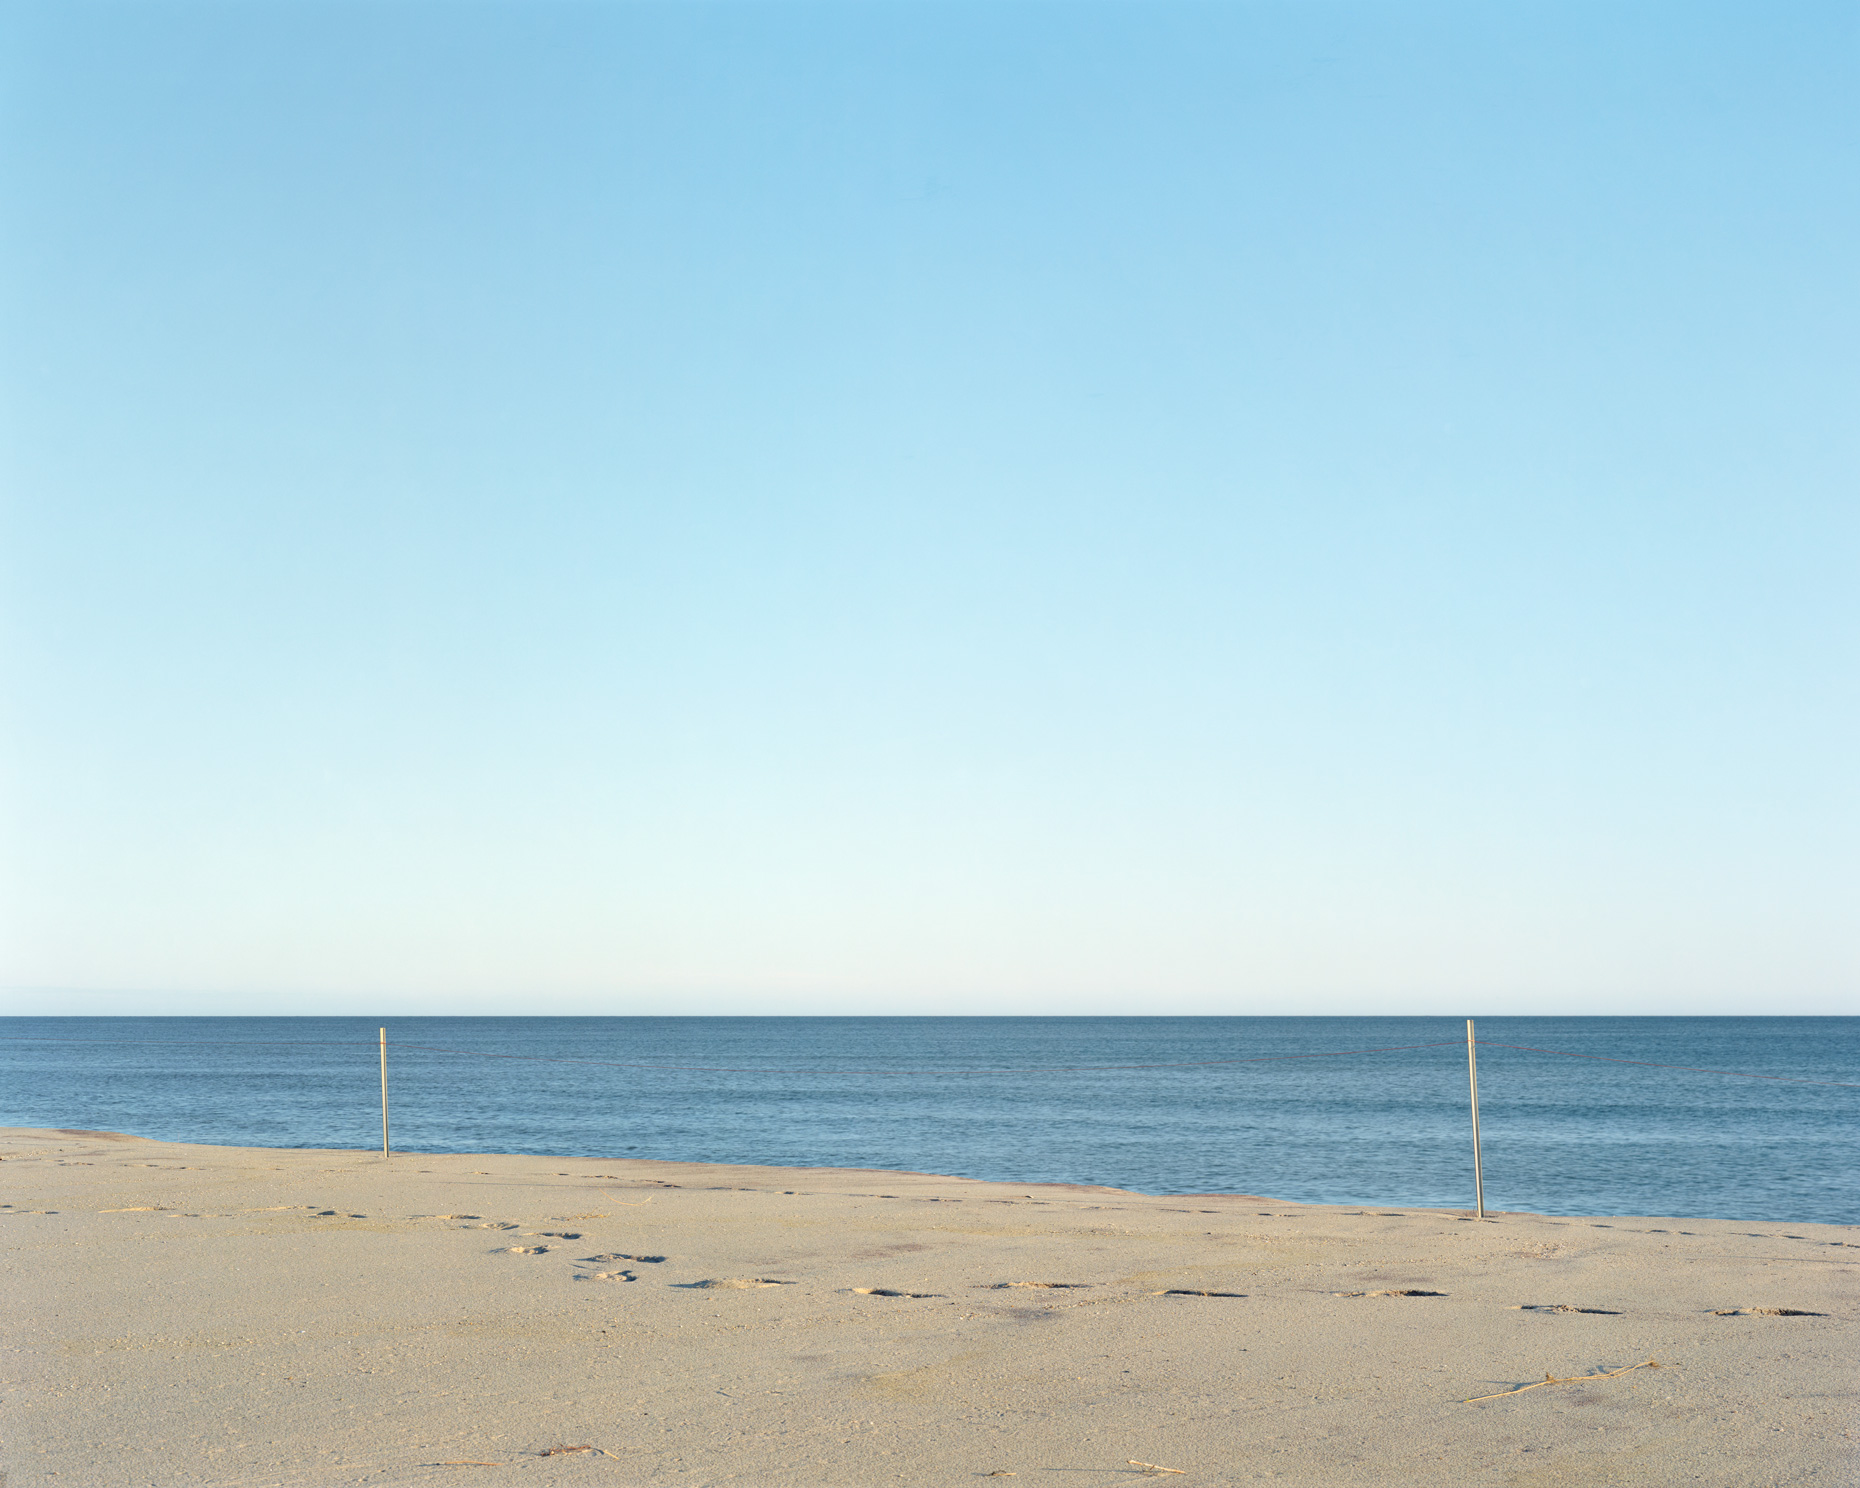 Southern Shore  |  Nantucket  |  Michael Gaillard